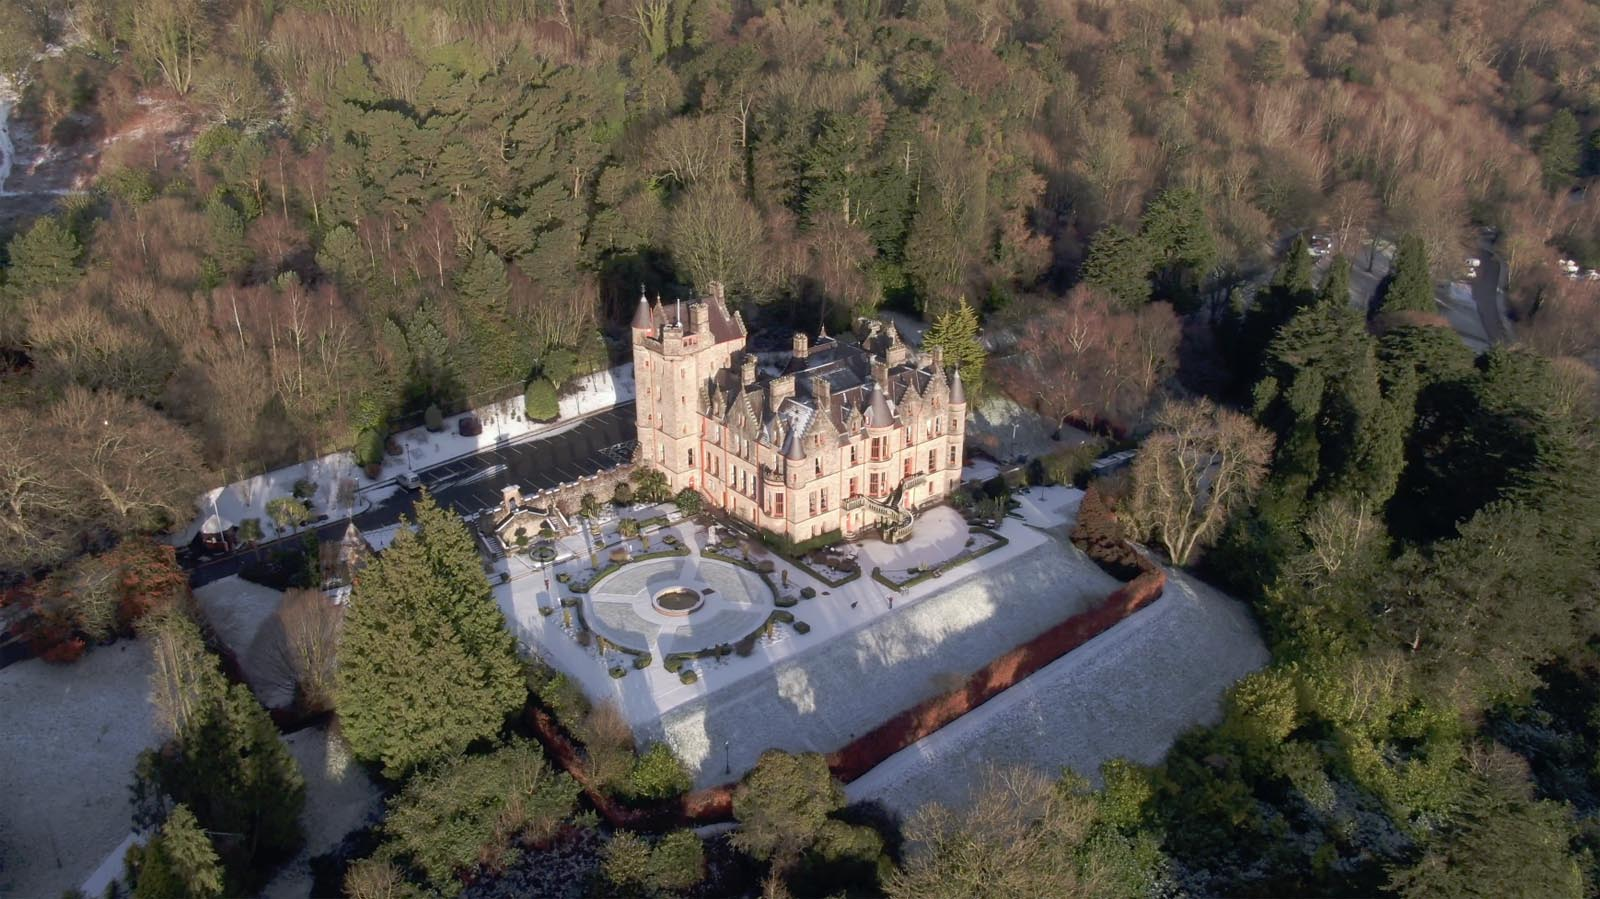 Aerial drone photography and video production services Dublin and Ireland portfolio - changing seasons in one video of Belfast Castle, Northern Ireland, video screenshot 5